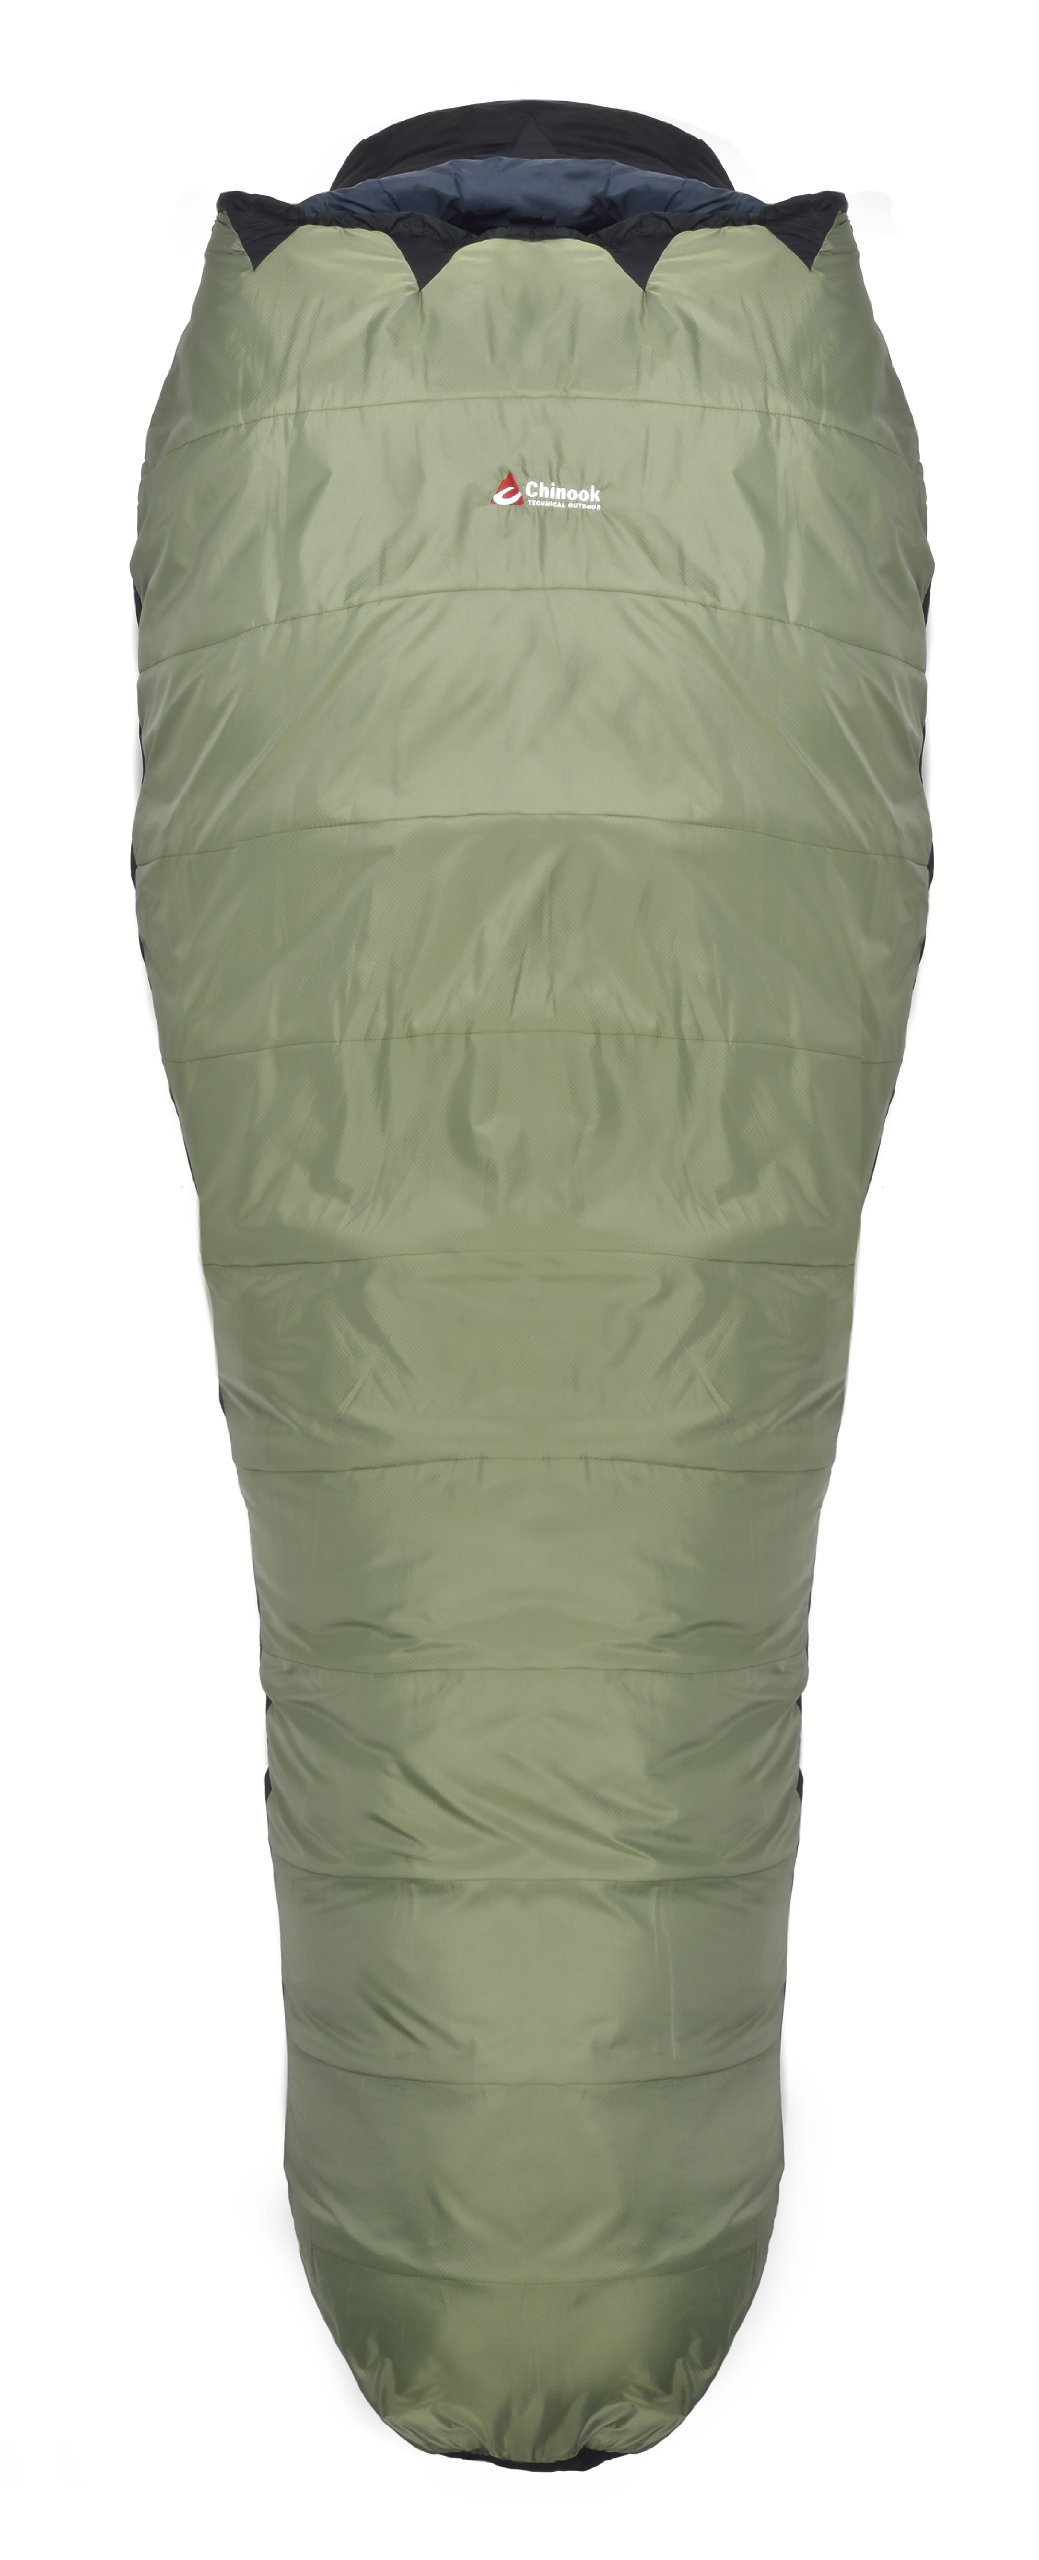 Chinook Everest Extreme Sleeping Bag by Chinook